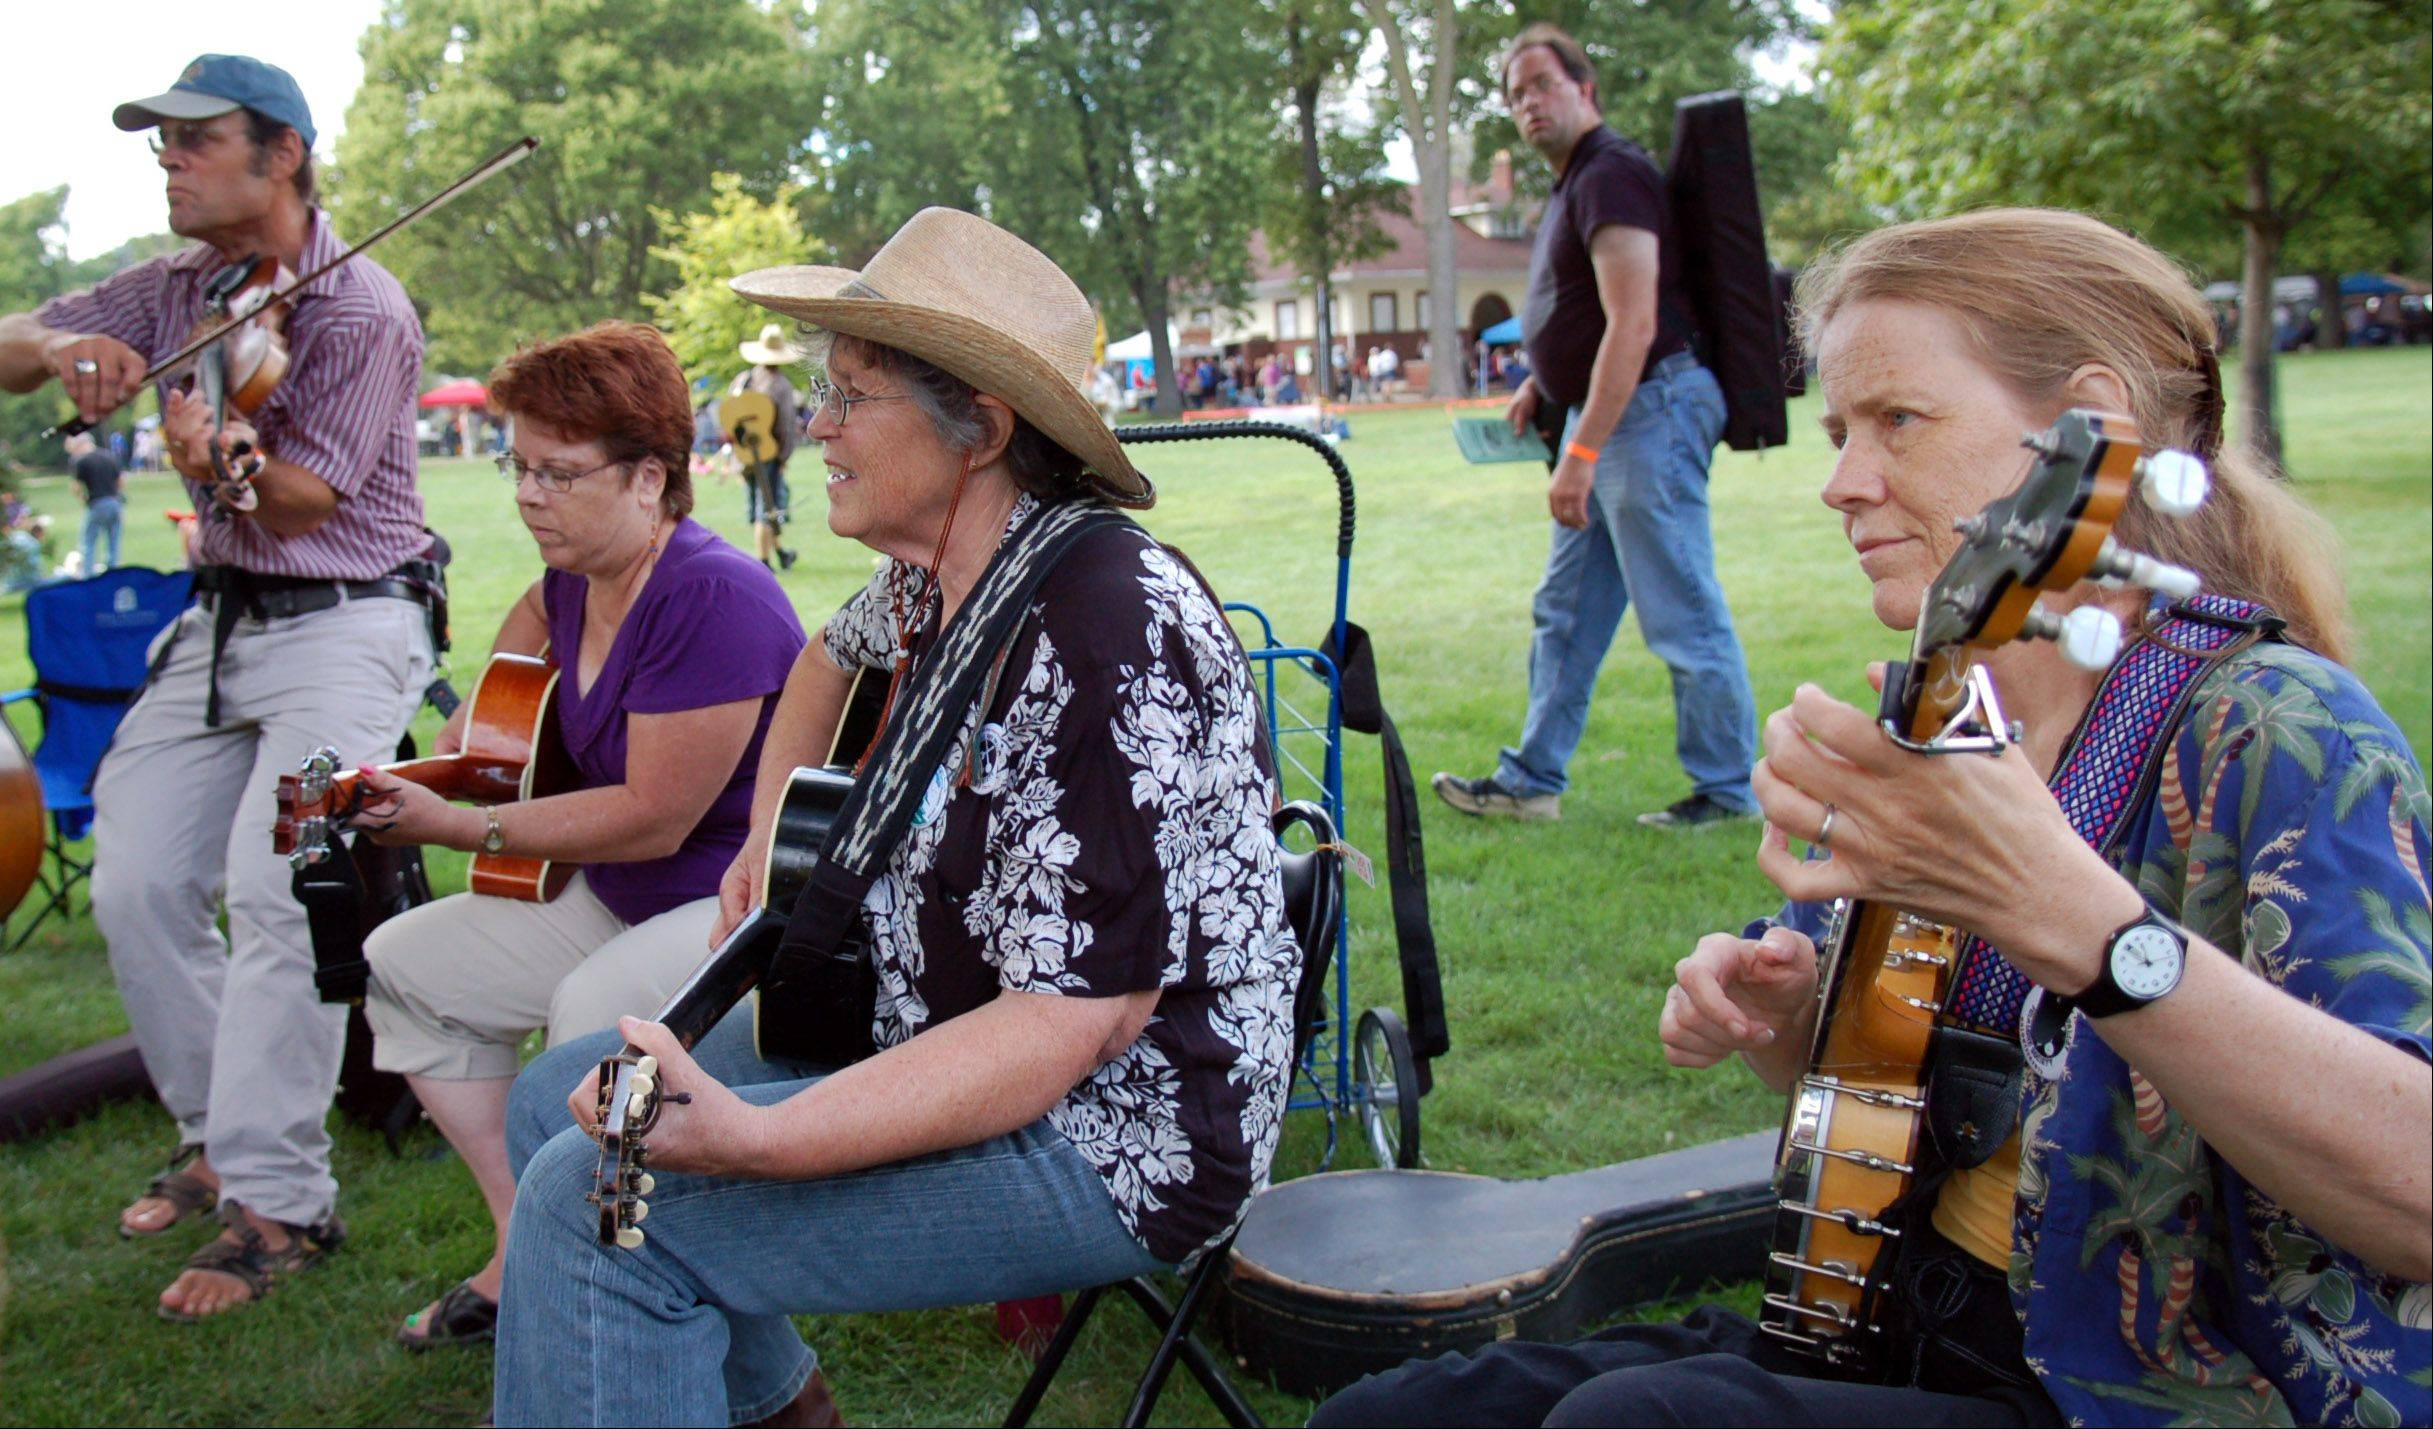 A group of musicians play folk music during last year's 35th Fox Valley Folk Music and Storytelling Festival at Island Park on the Fox River in Geneva. The group meets up every year to play together; some are old friends and some are new.